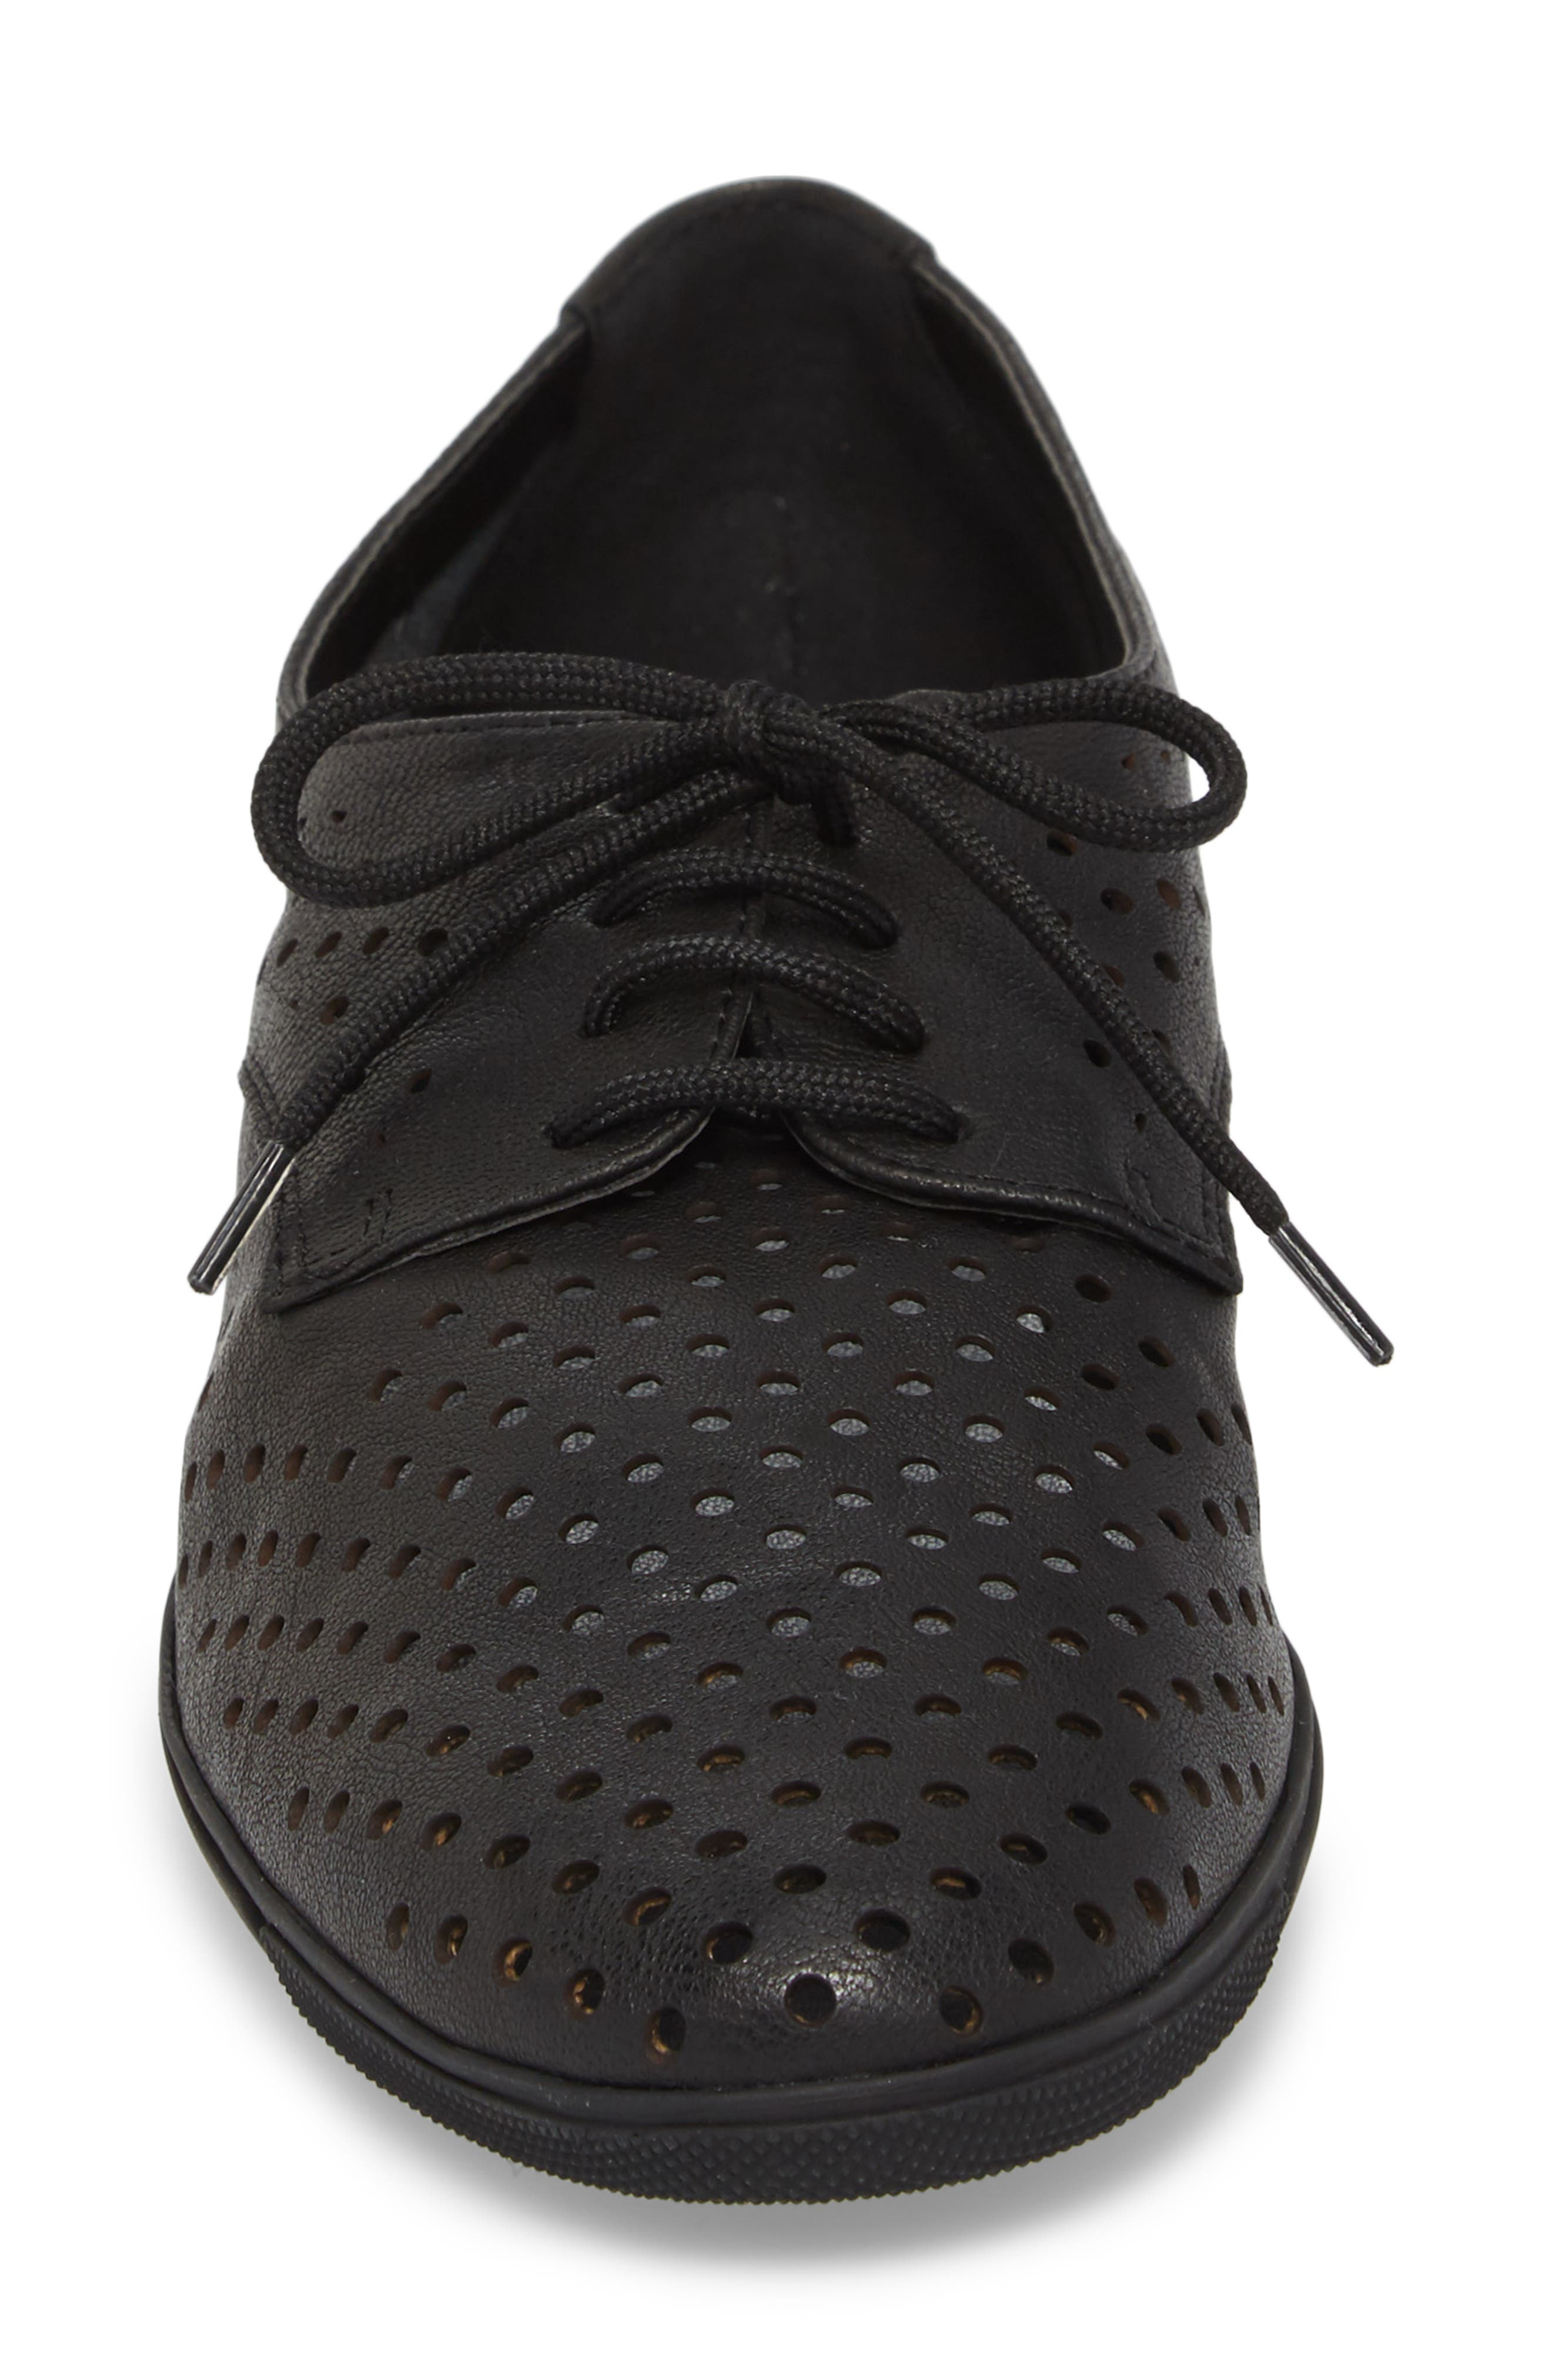 Dirce Perforated Oxford Flat,                             Alternate thumbnail 4, color,                             Black Leather